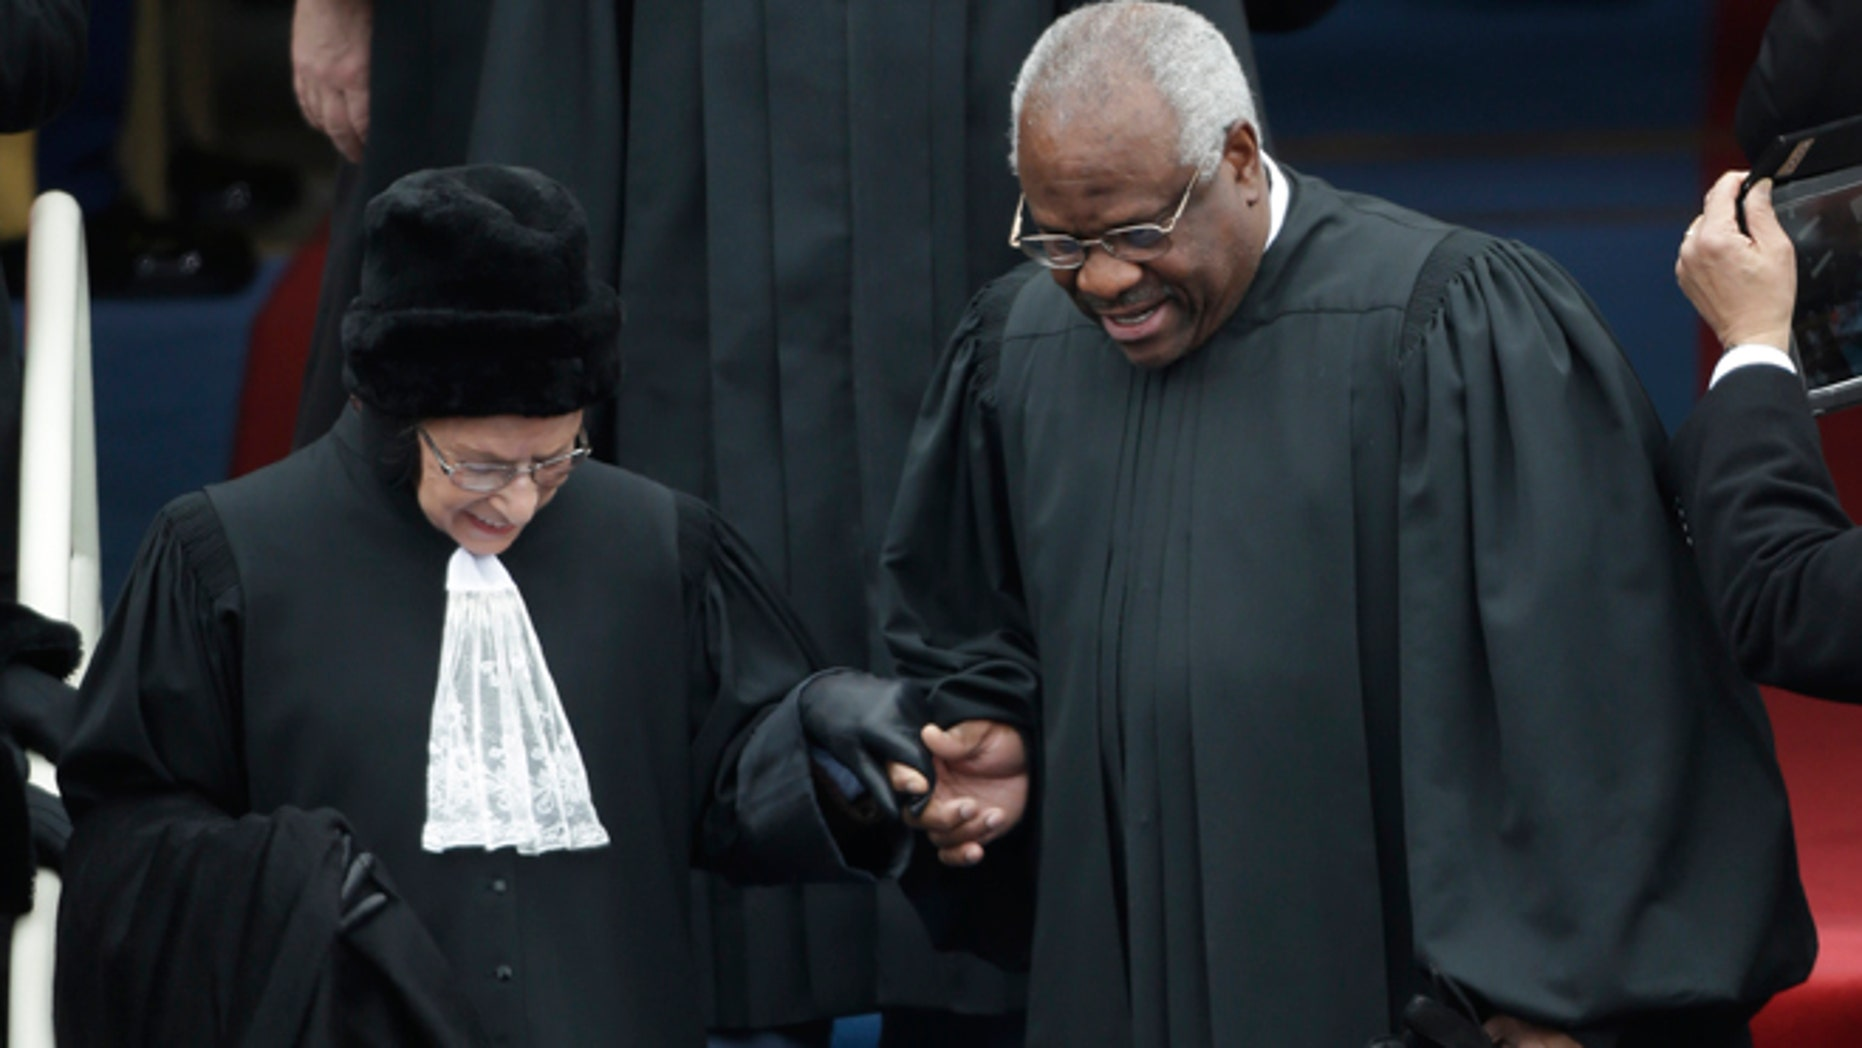 Jan. 21, 2013: Supreme Court associate justices Ruth Bader Ginsburg, left and Clarence Thomas arrive at the ceremonial swearing-in for President Barack Obama at the U.S. Capitol during the 57th Presidential Inauguration.